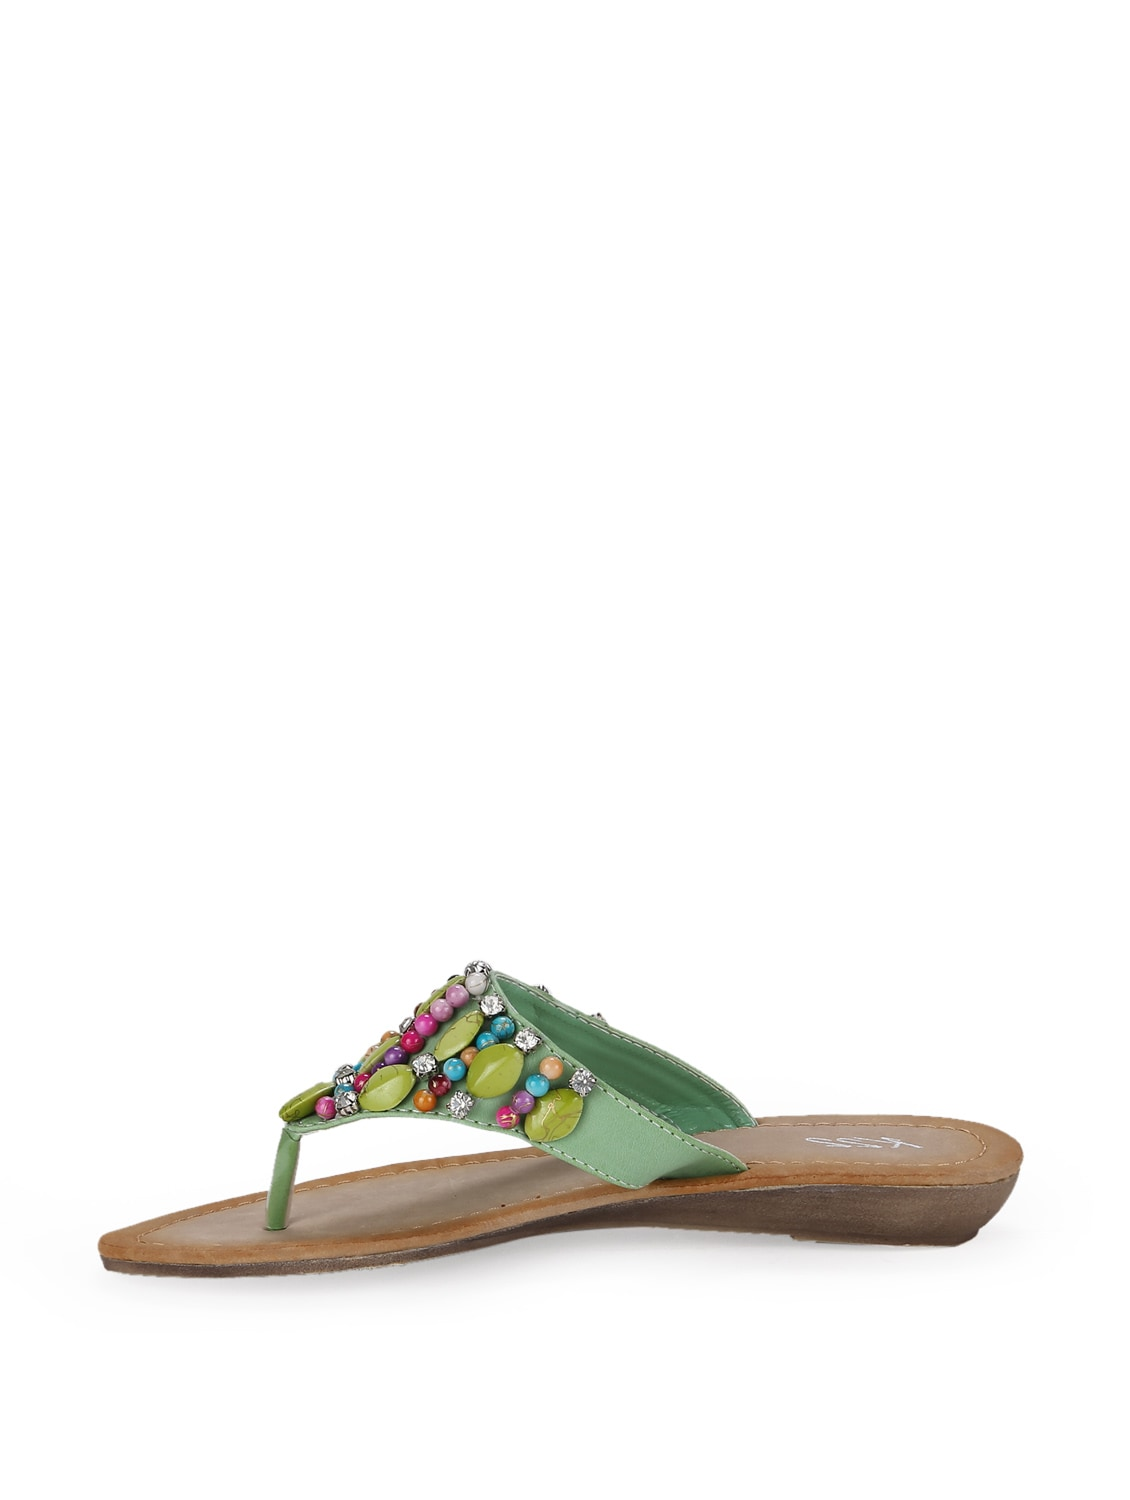 804a573f4 Buy Mint Green Beaded Sandals for Women from K22 for ₹499 at 0% off ...